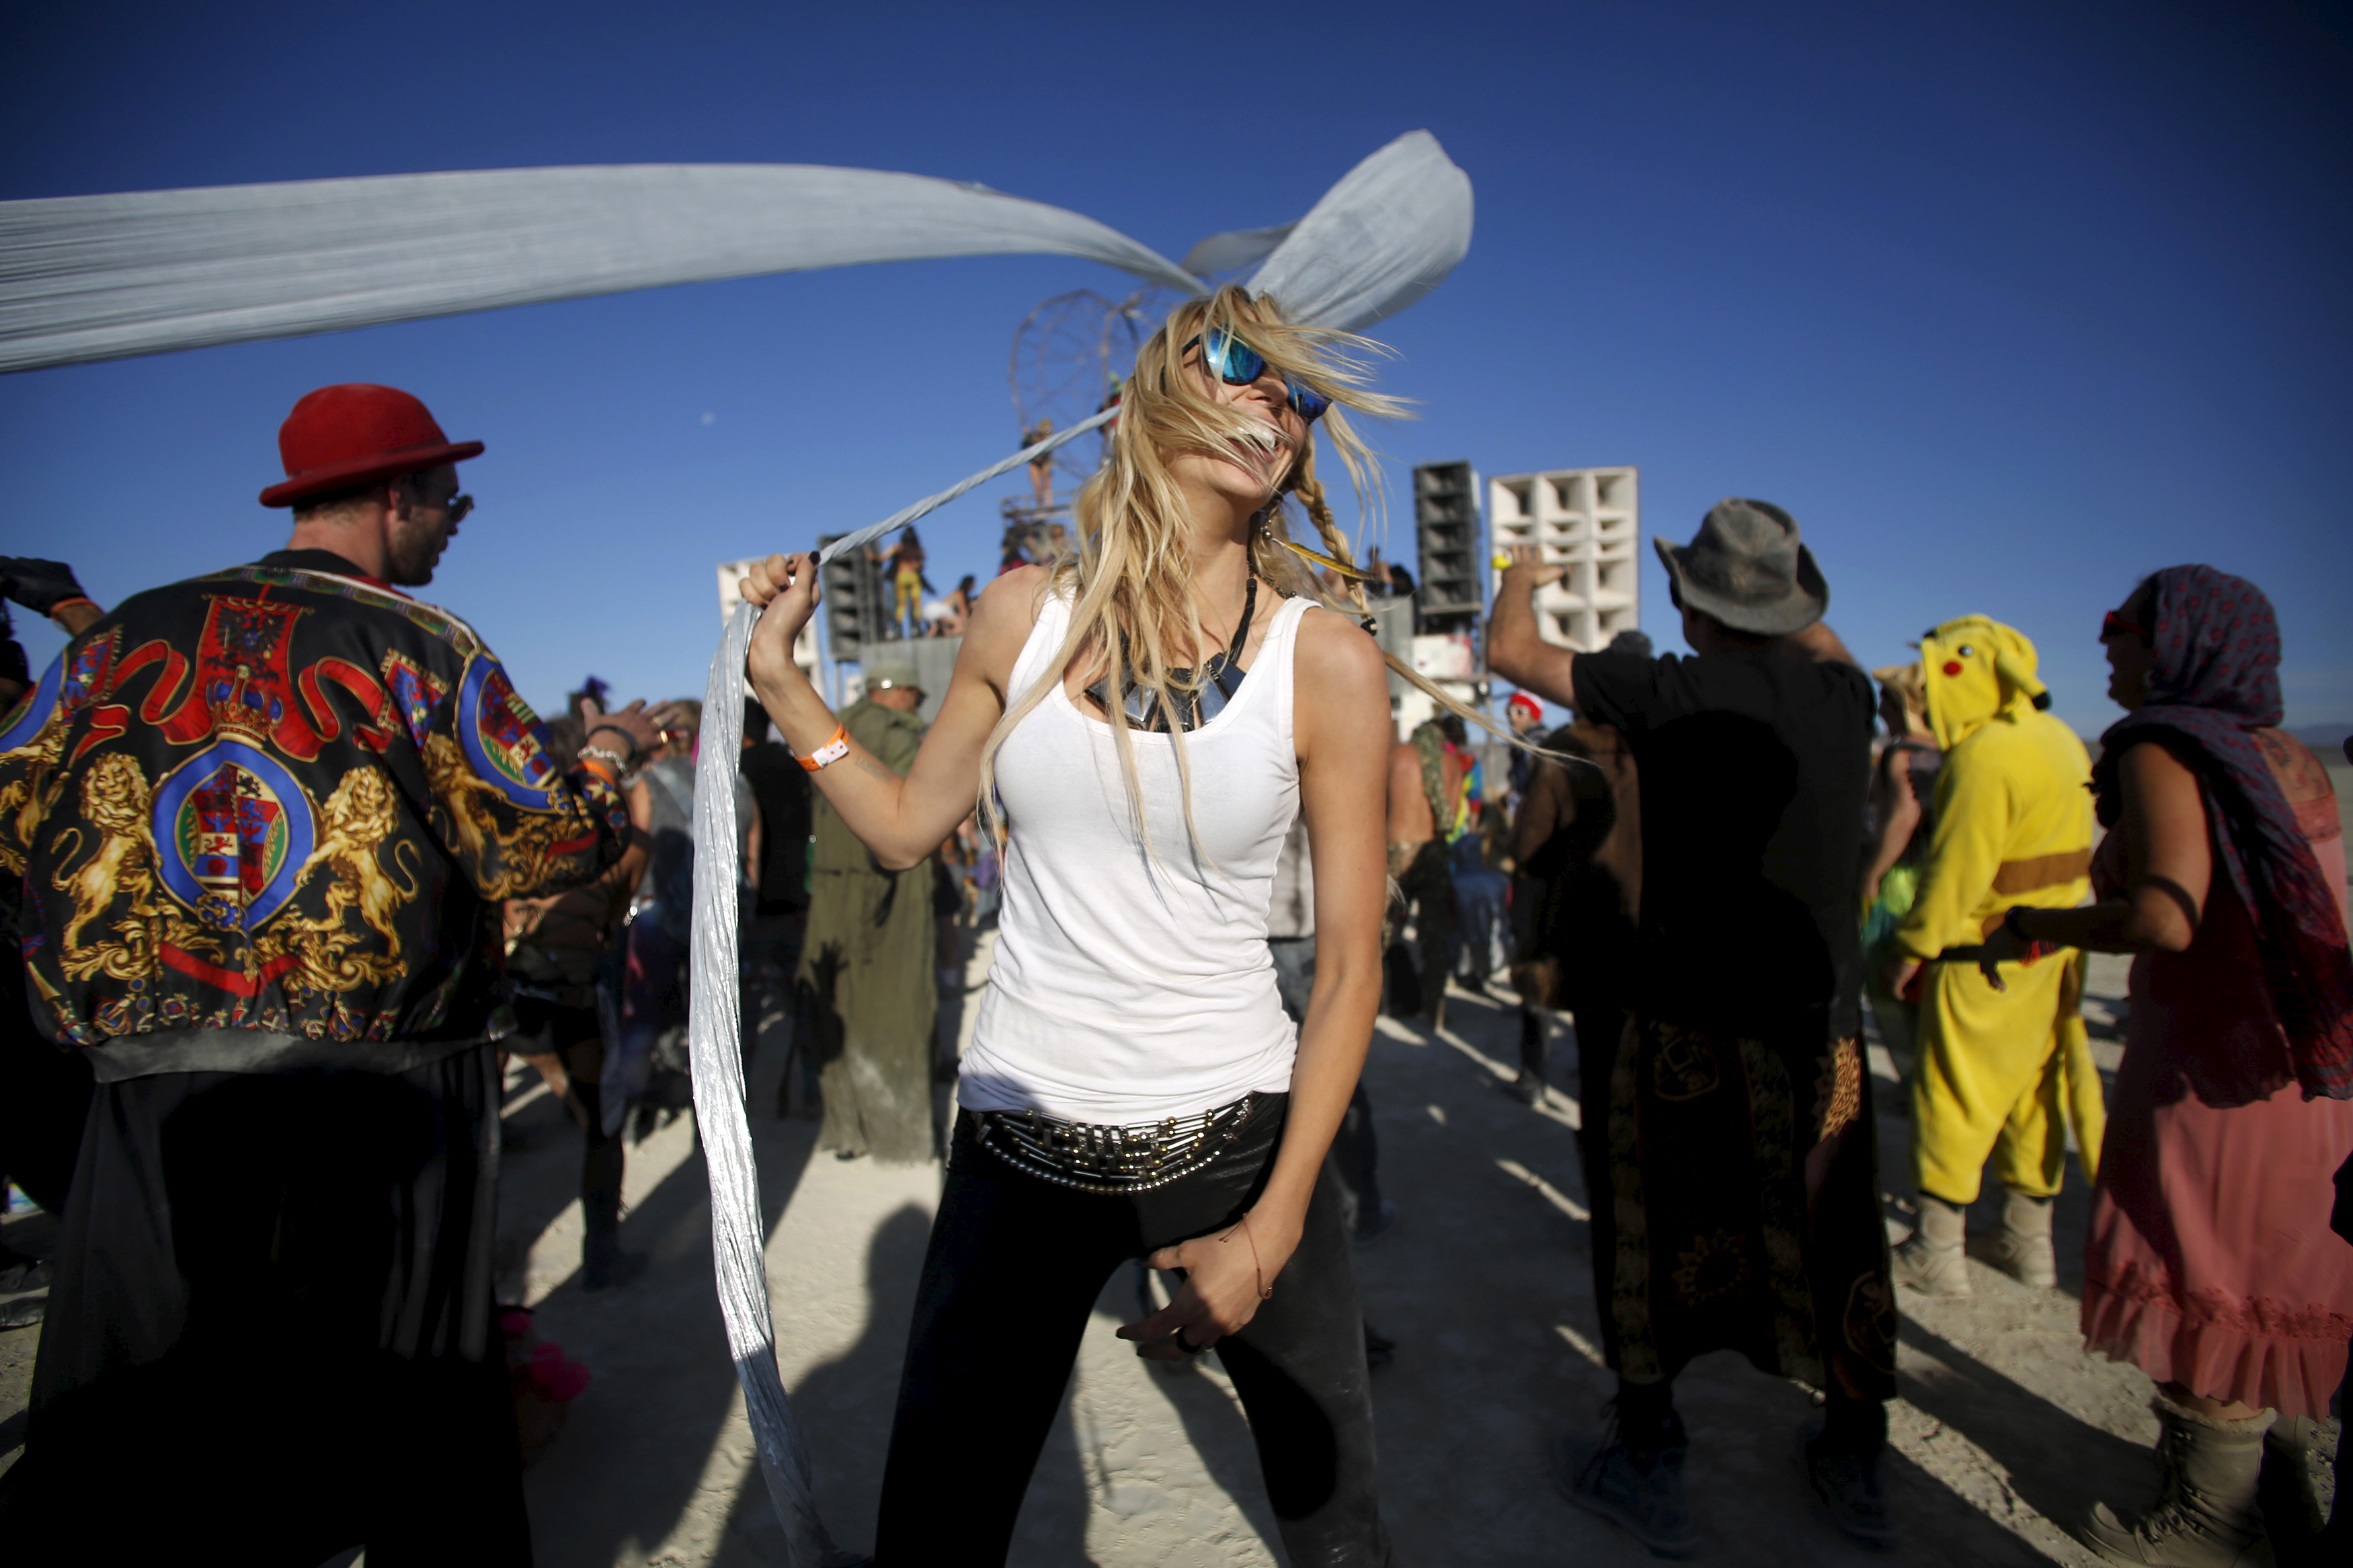 Burning Man started in San Francisco's Baker Beach in 1986 and then transitioned to Black Rock Desert in 1990. It's an art and music mishmash that encourages self-expression. Photo by Jim Urquhart/Reuters